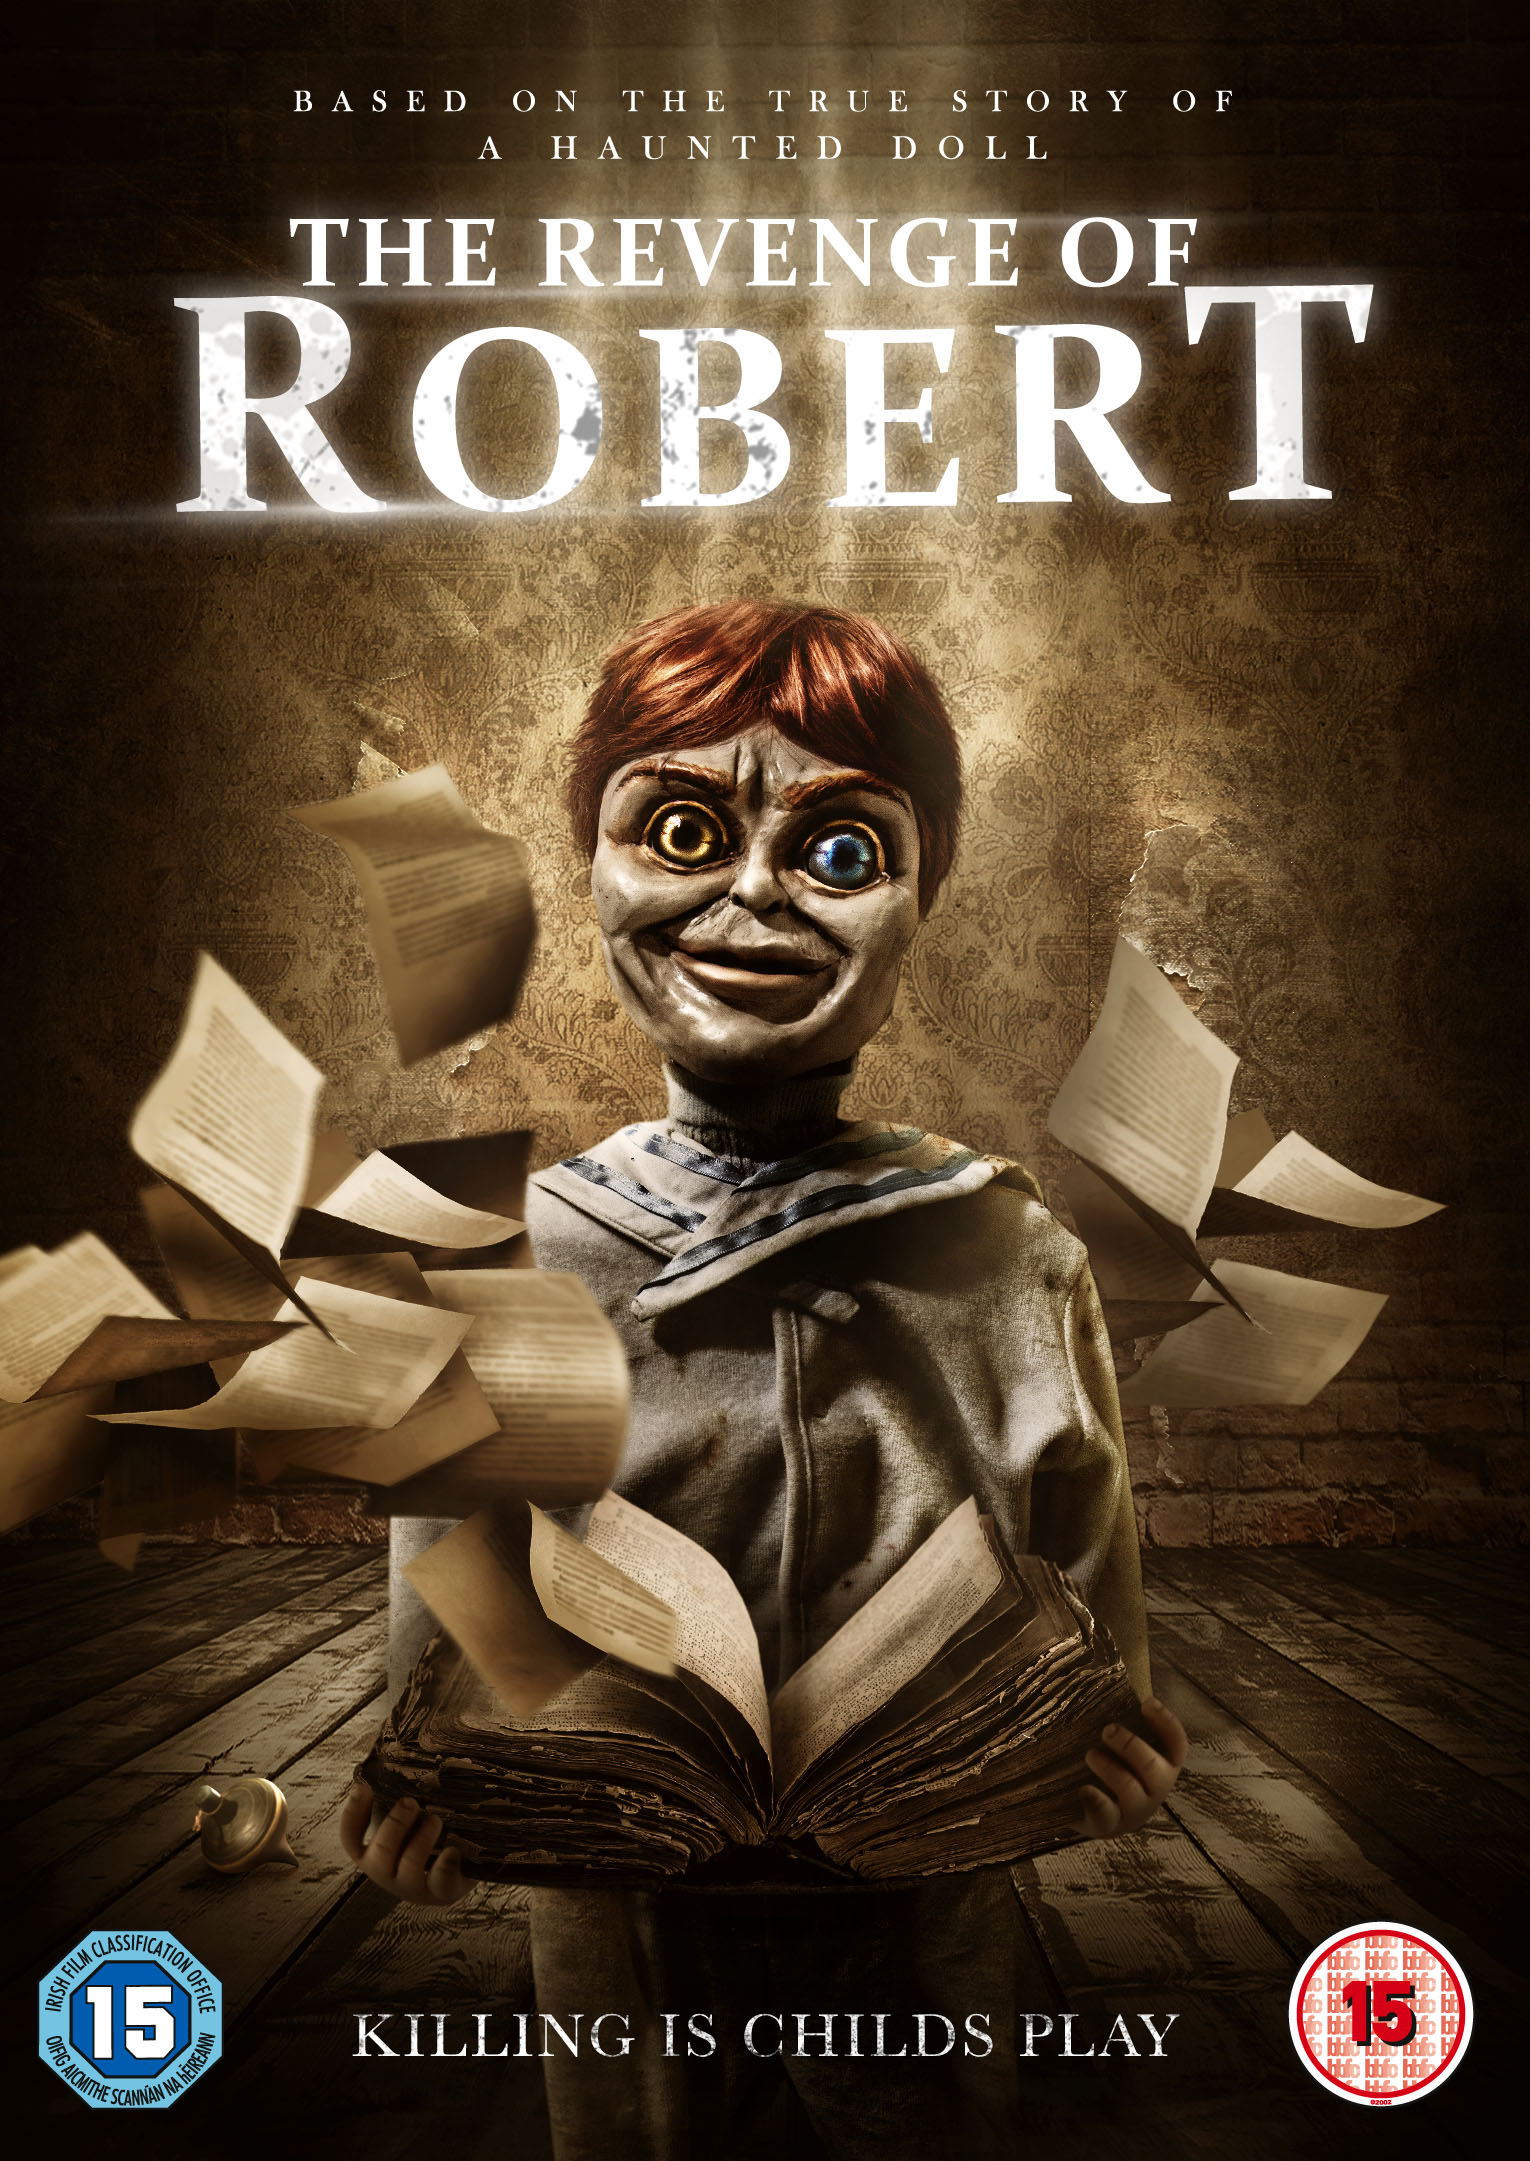 The Revenge Of Robert The Doll 2018 Imdb